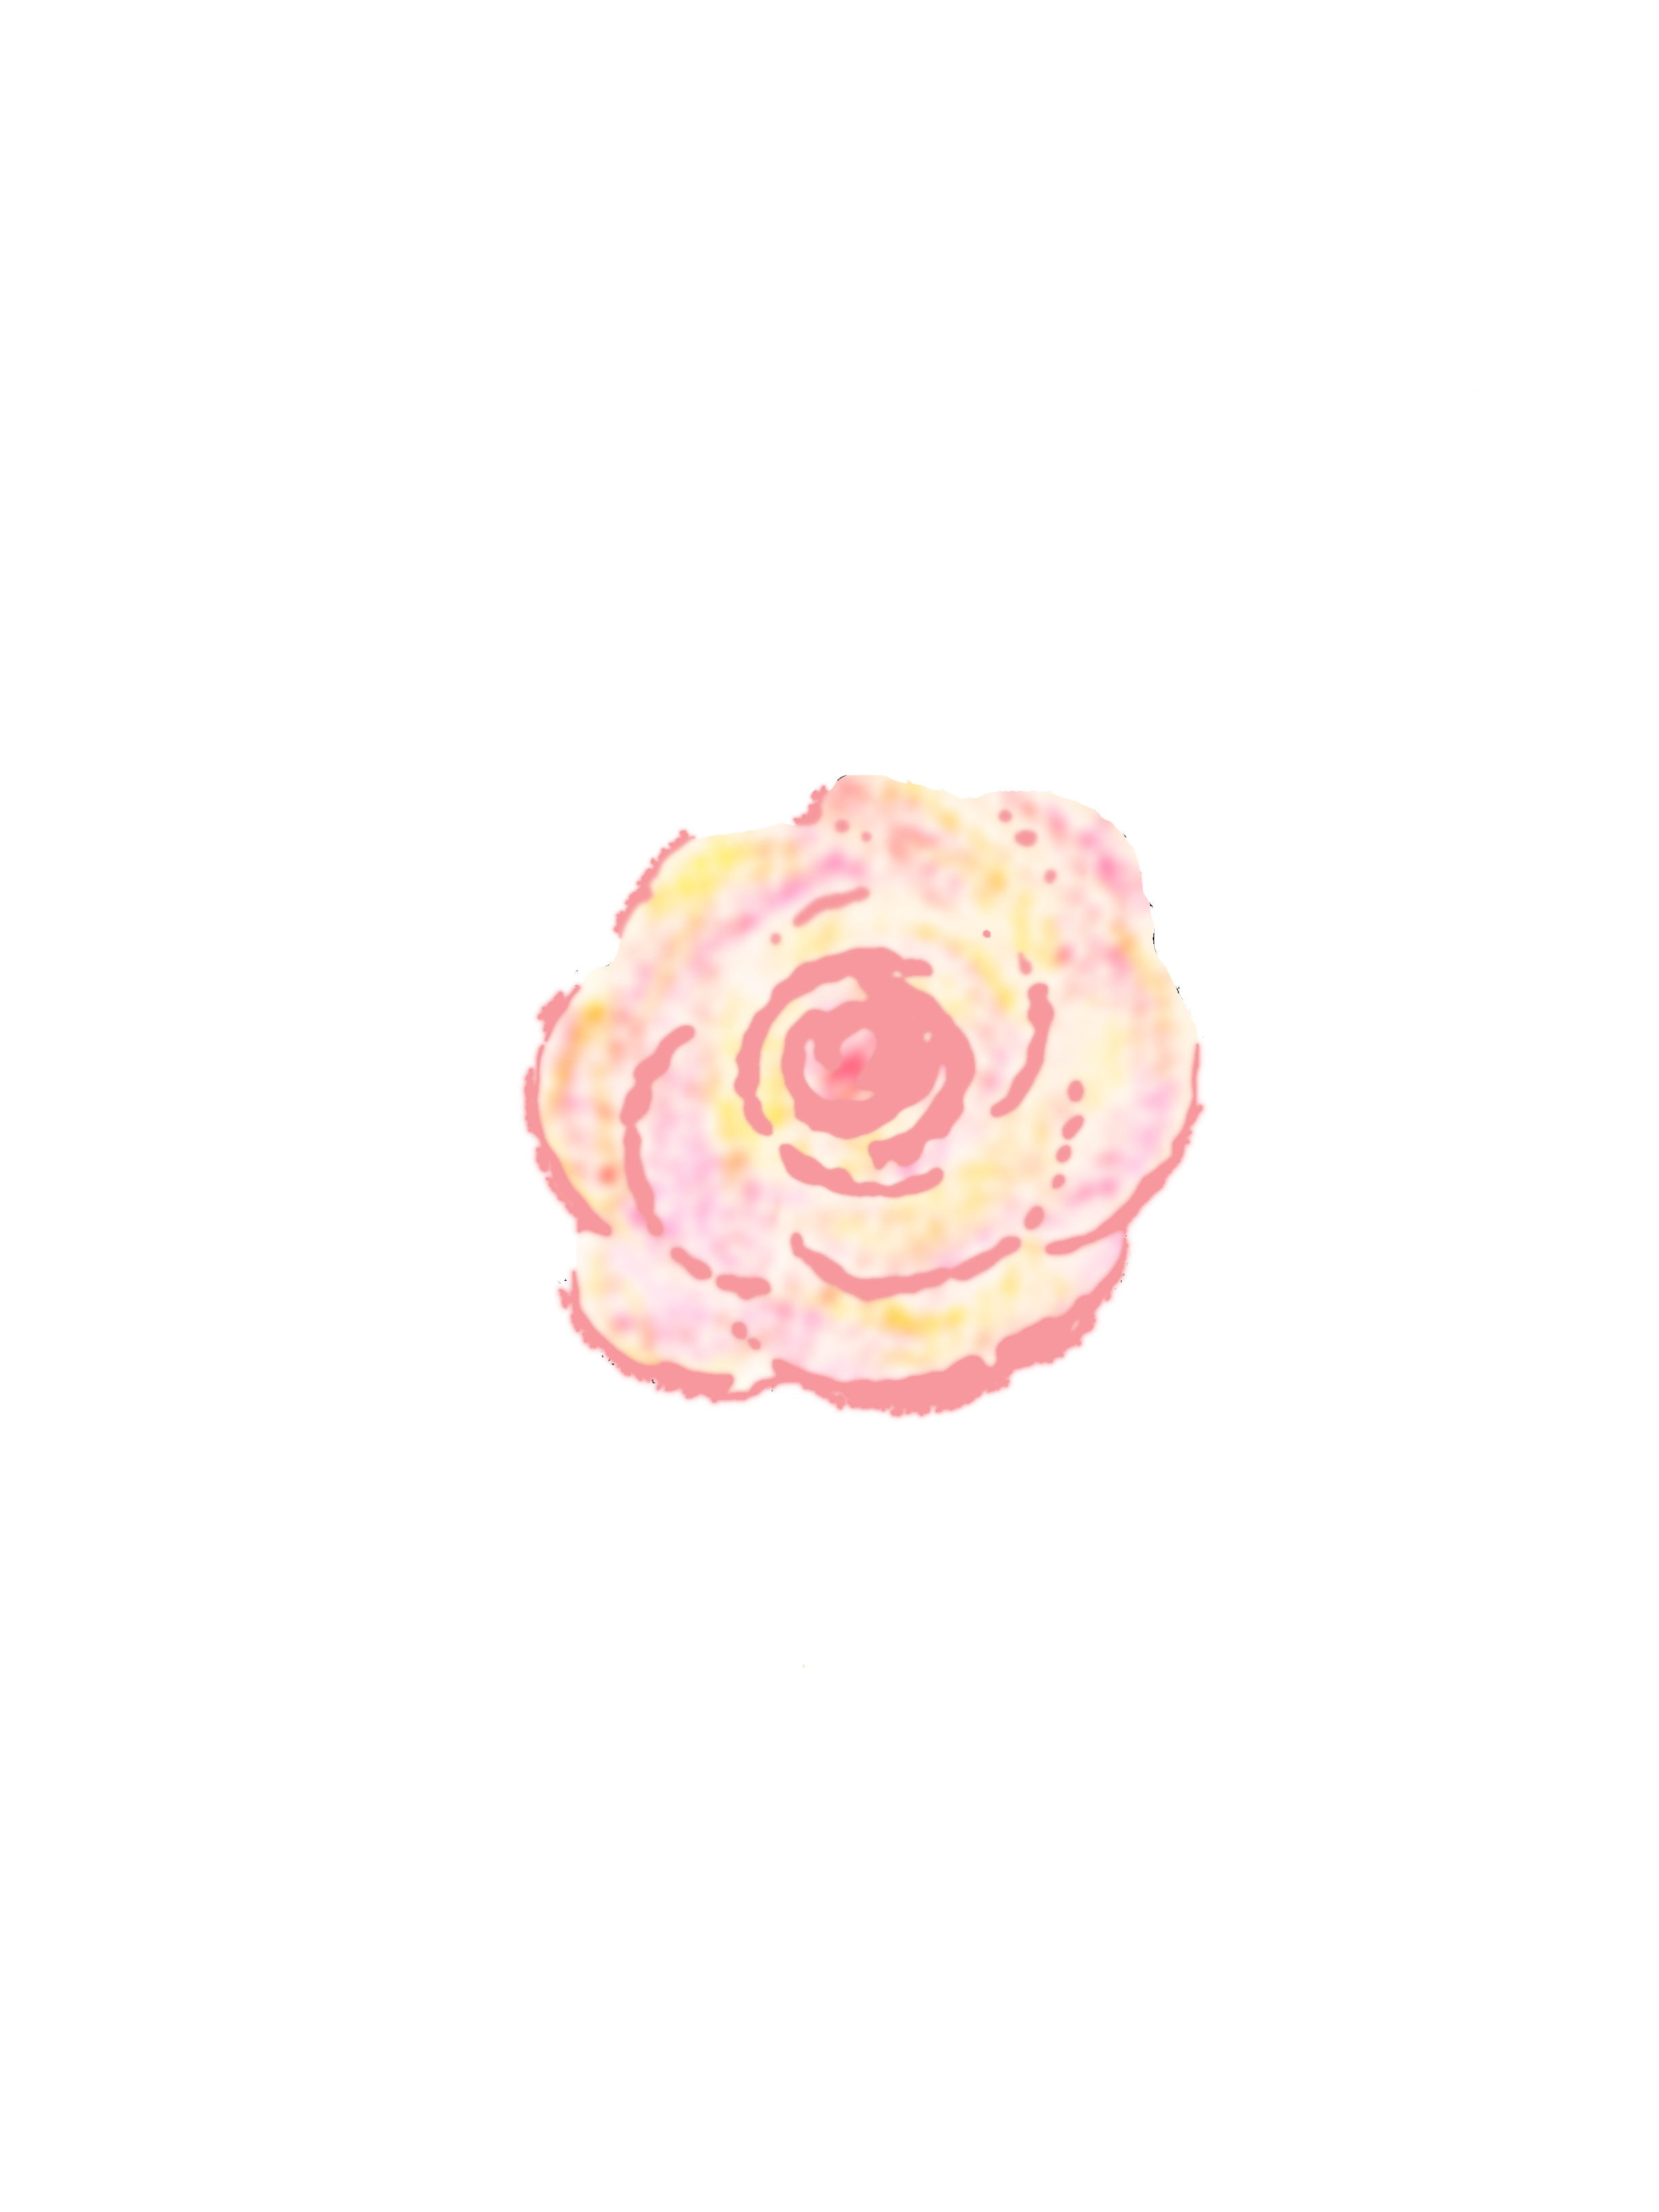 Flower chalk art png. Free graphics abstract watercolor